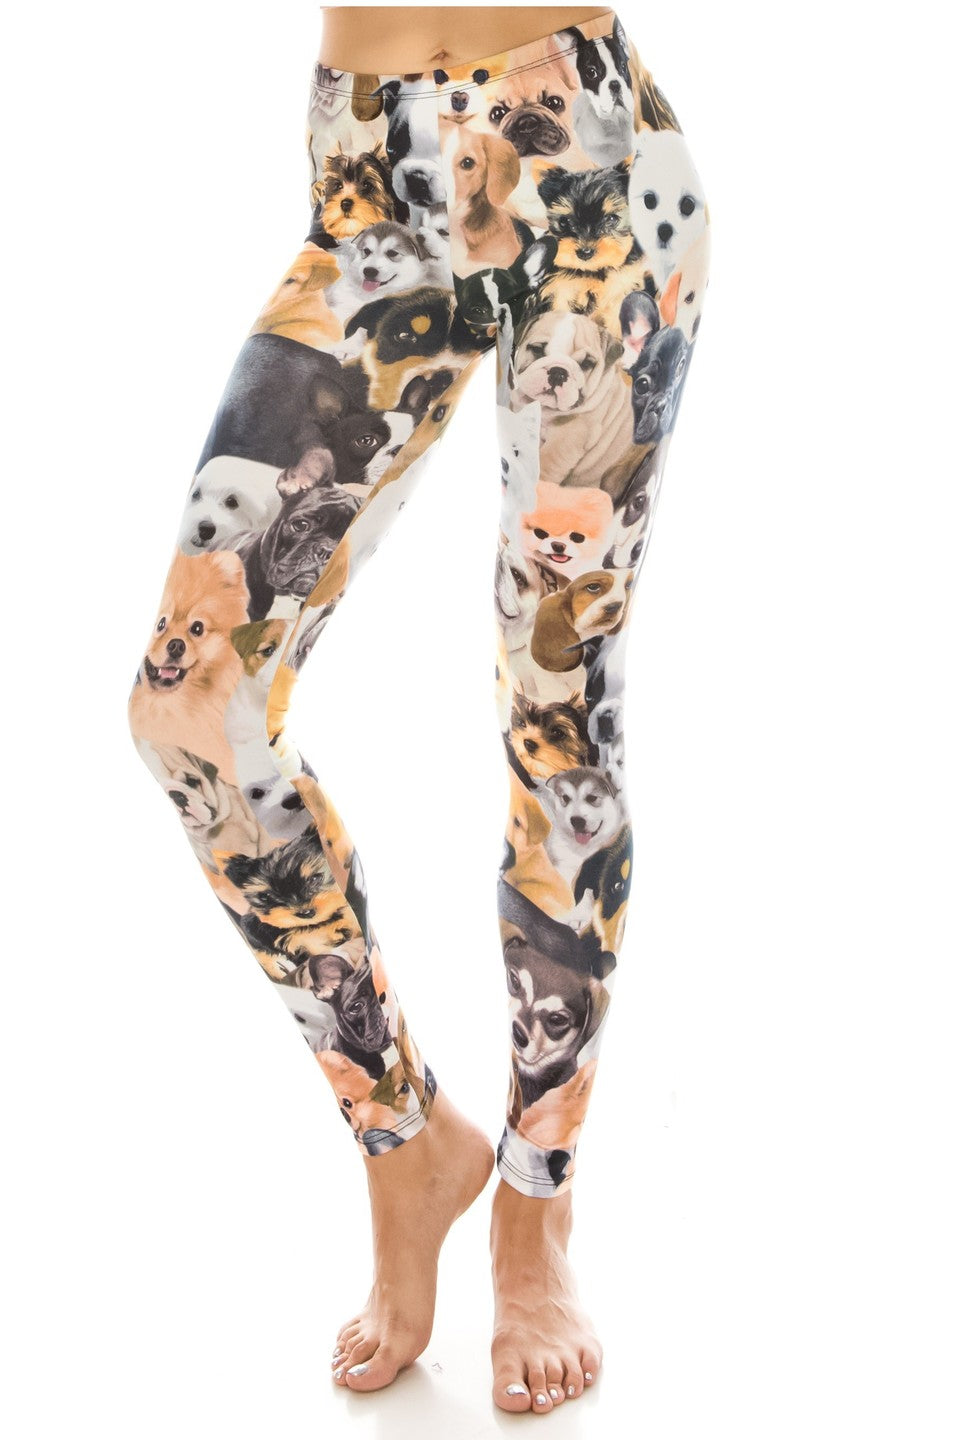 Real Dogs Leggings USA